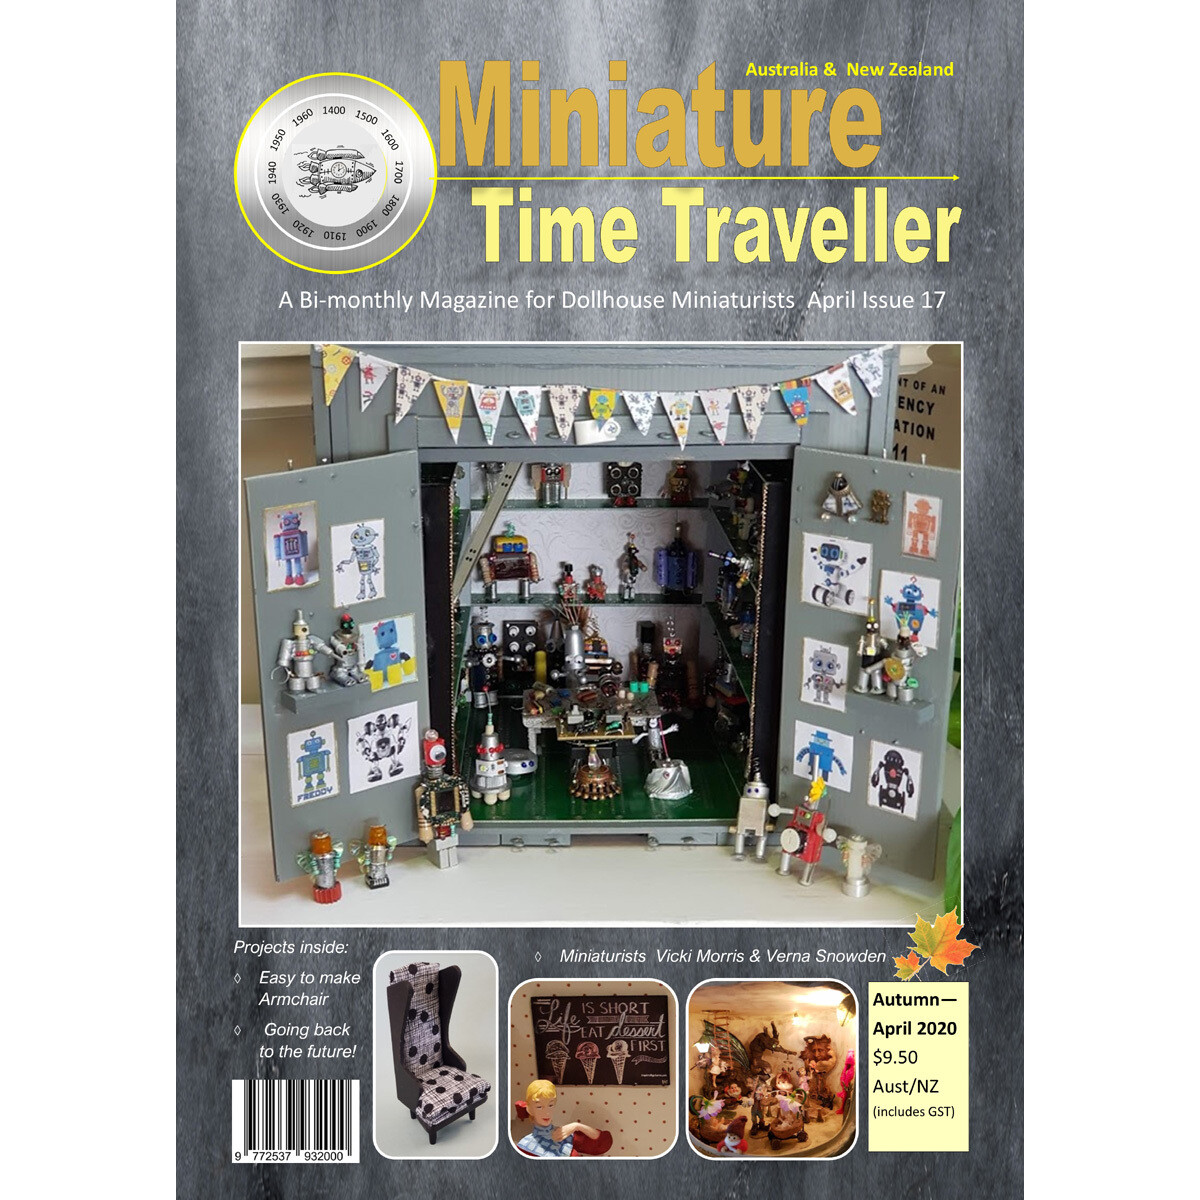 NEW ISSUE APRIL 2020 Miniature Time Traveller Magazine - Single copy. P&P extra.